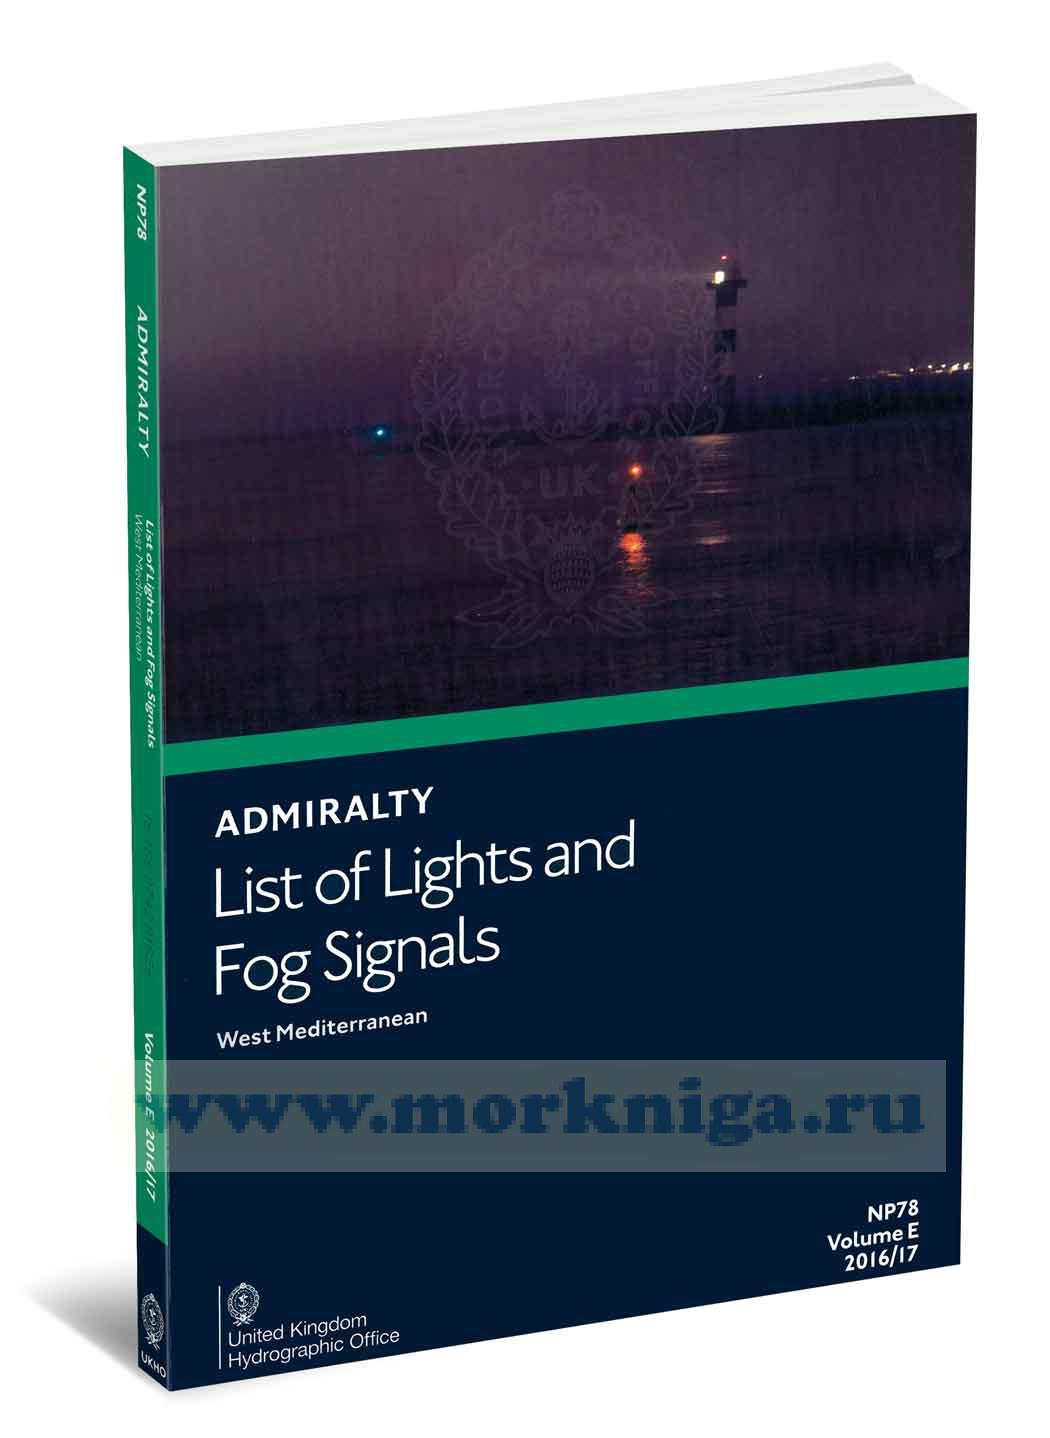 Admiralty list of lights and fog signals. West Mediterranean. NP78. Volume E. 2016/17